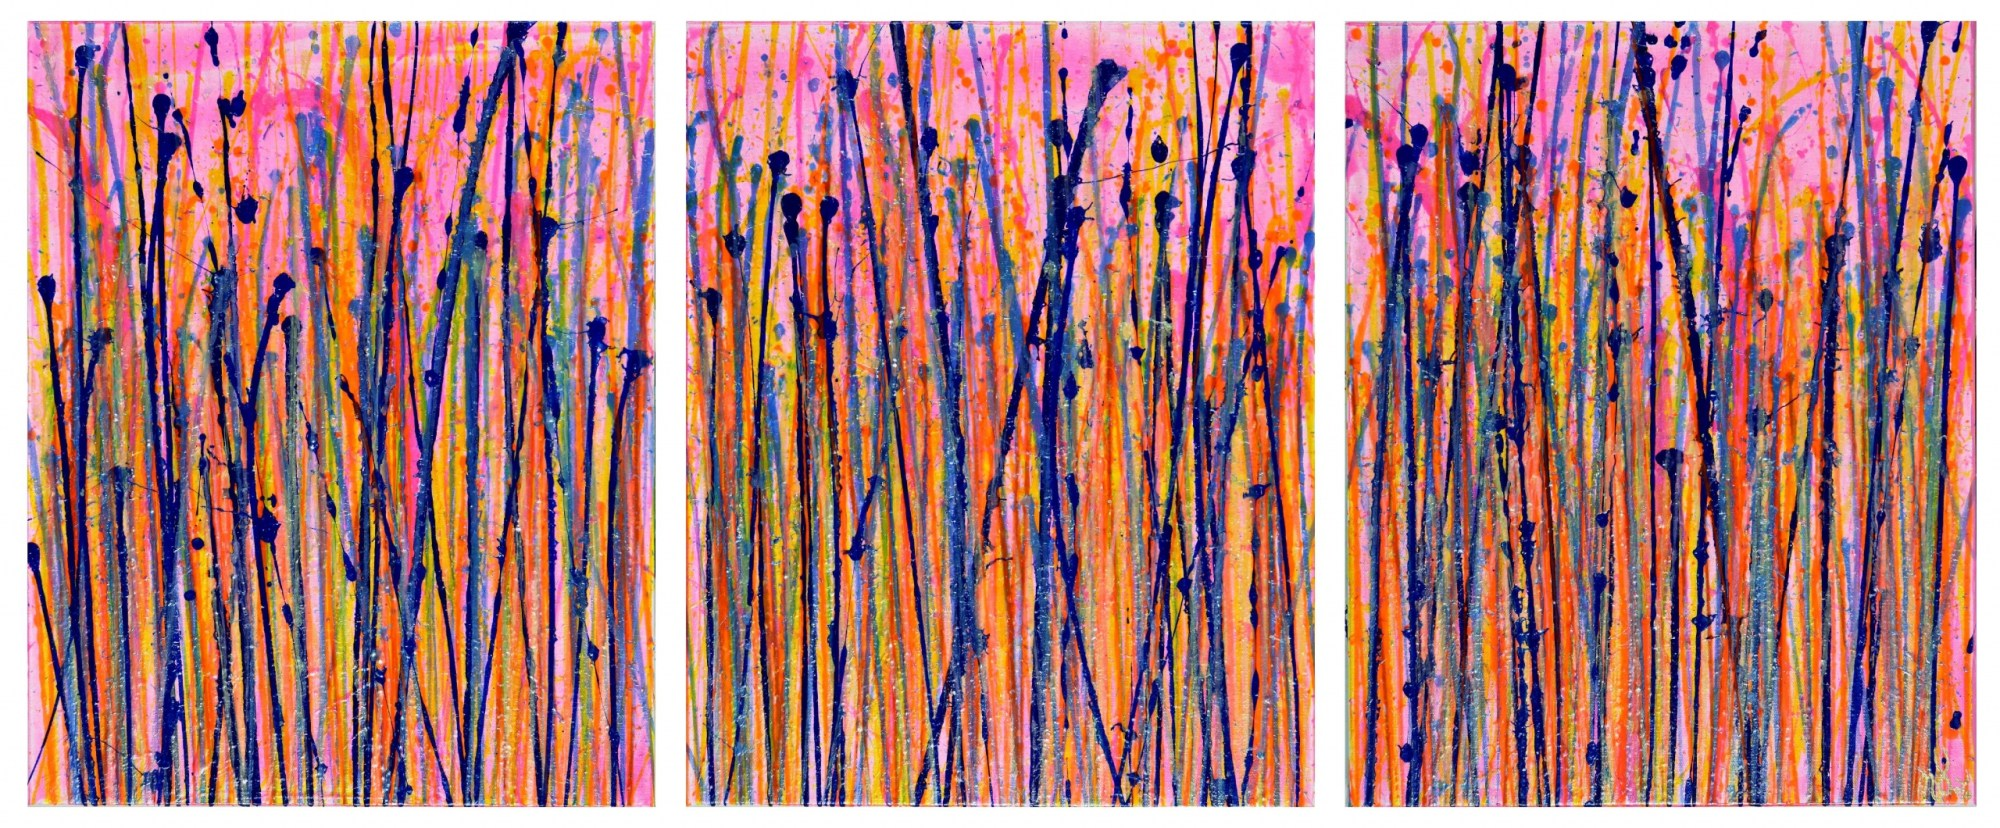 Translucent Panorama (Natures Imagery) 2 (2020) - Triptych